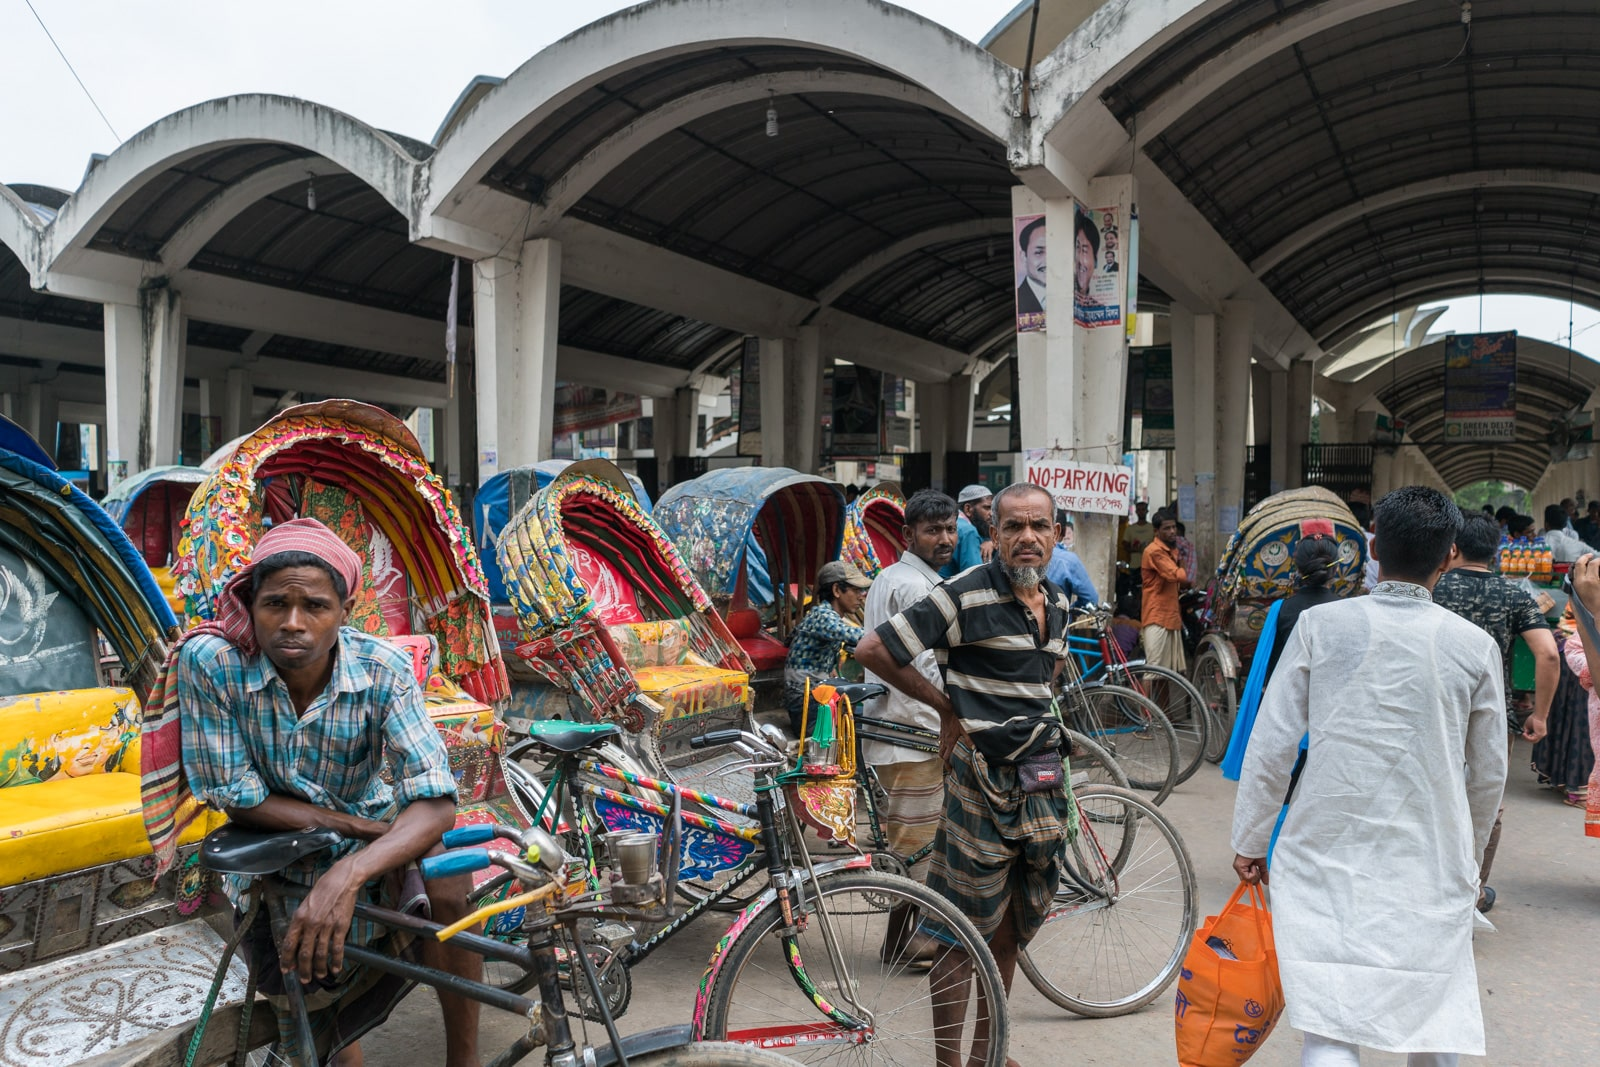 Cross from Bangladesh to India by train - Rickshaw drivers outside Dhaka Kamalapur railway station - Lost With Purpose travel blog